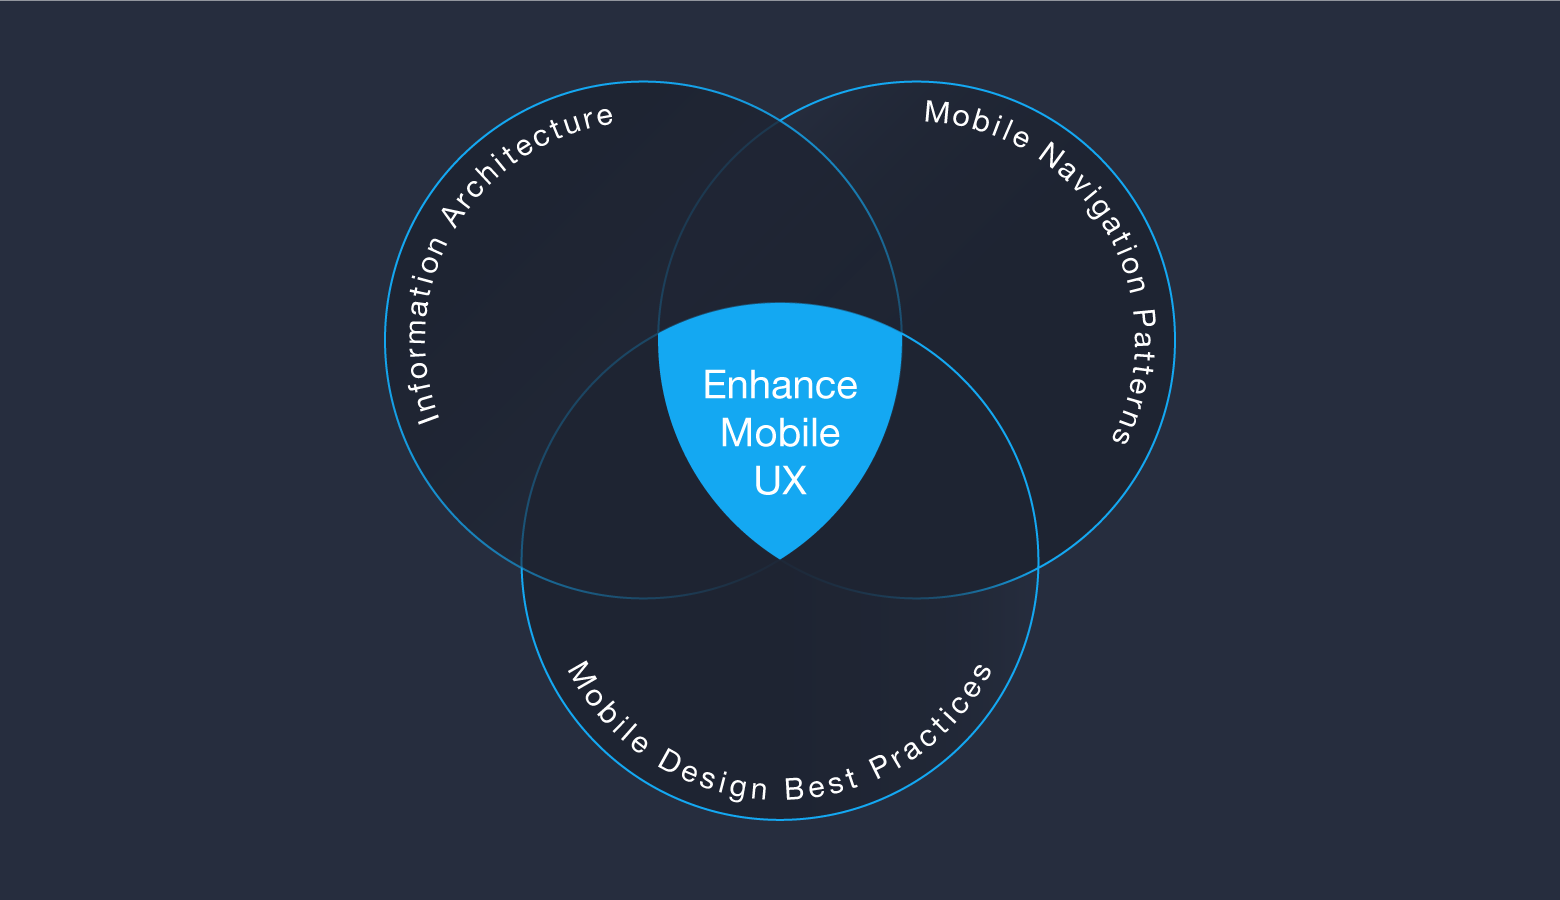 Information architecture and mobile navigation patterns enhance UX.